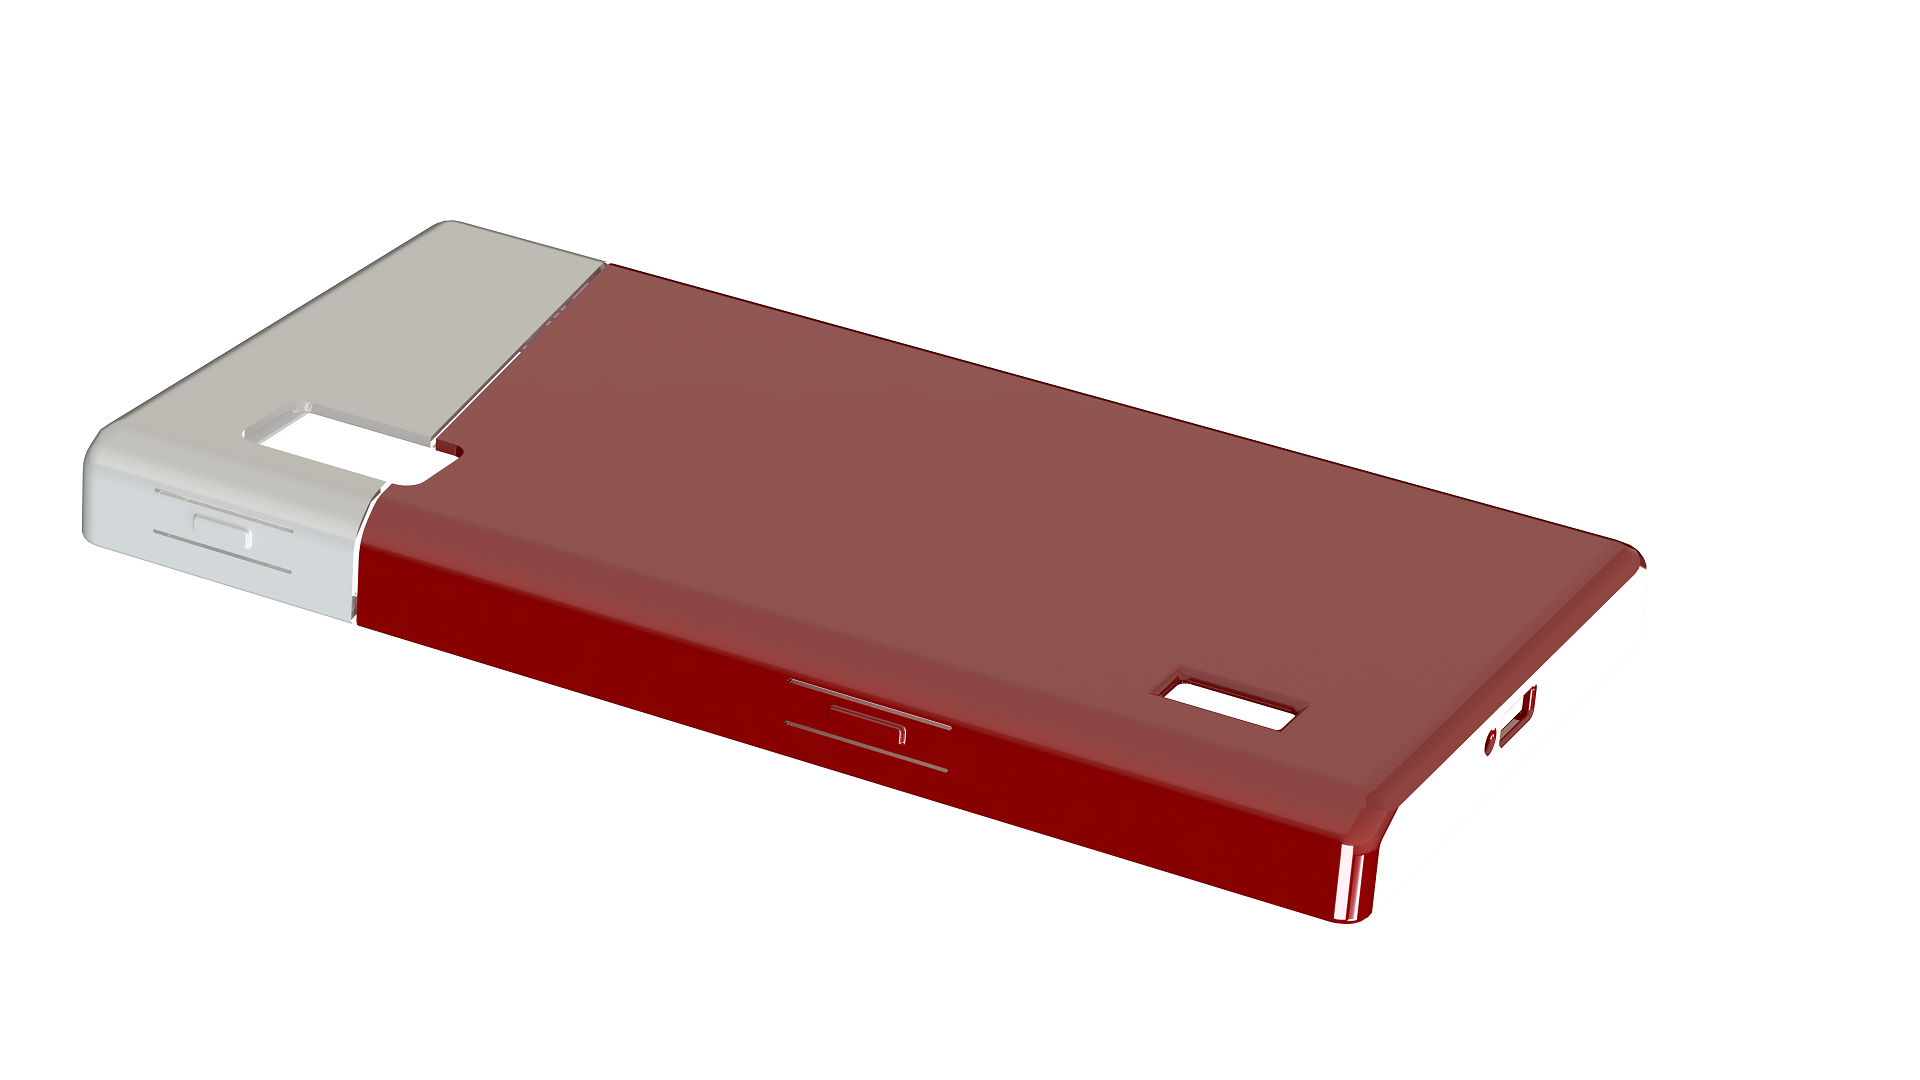 best website 83b44 4b668 Fairphone 2 3D printed casings available - Do It Yourself ...